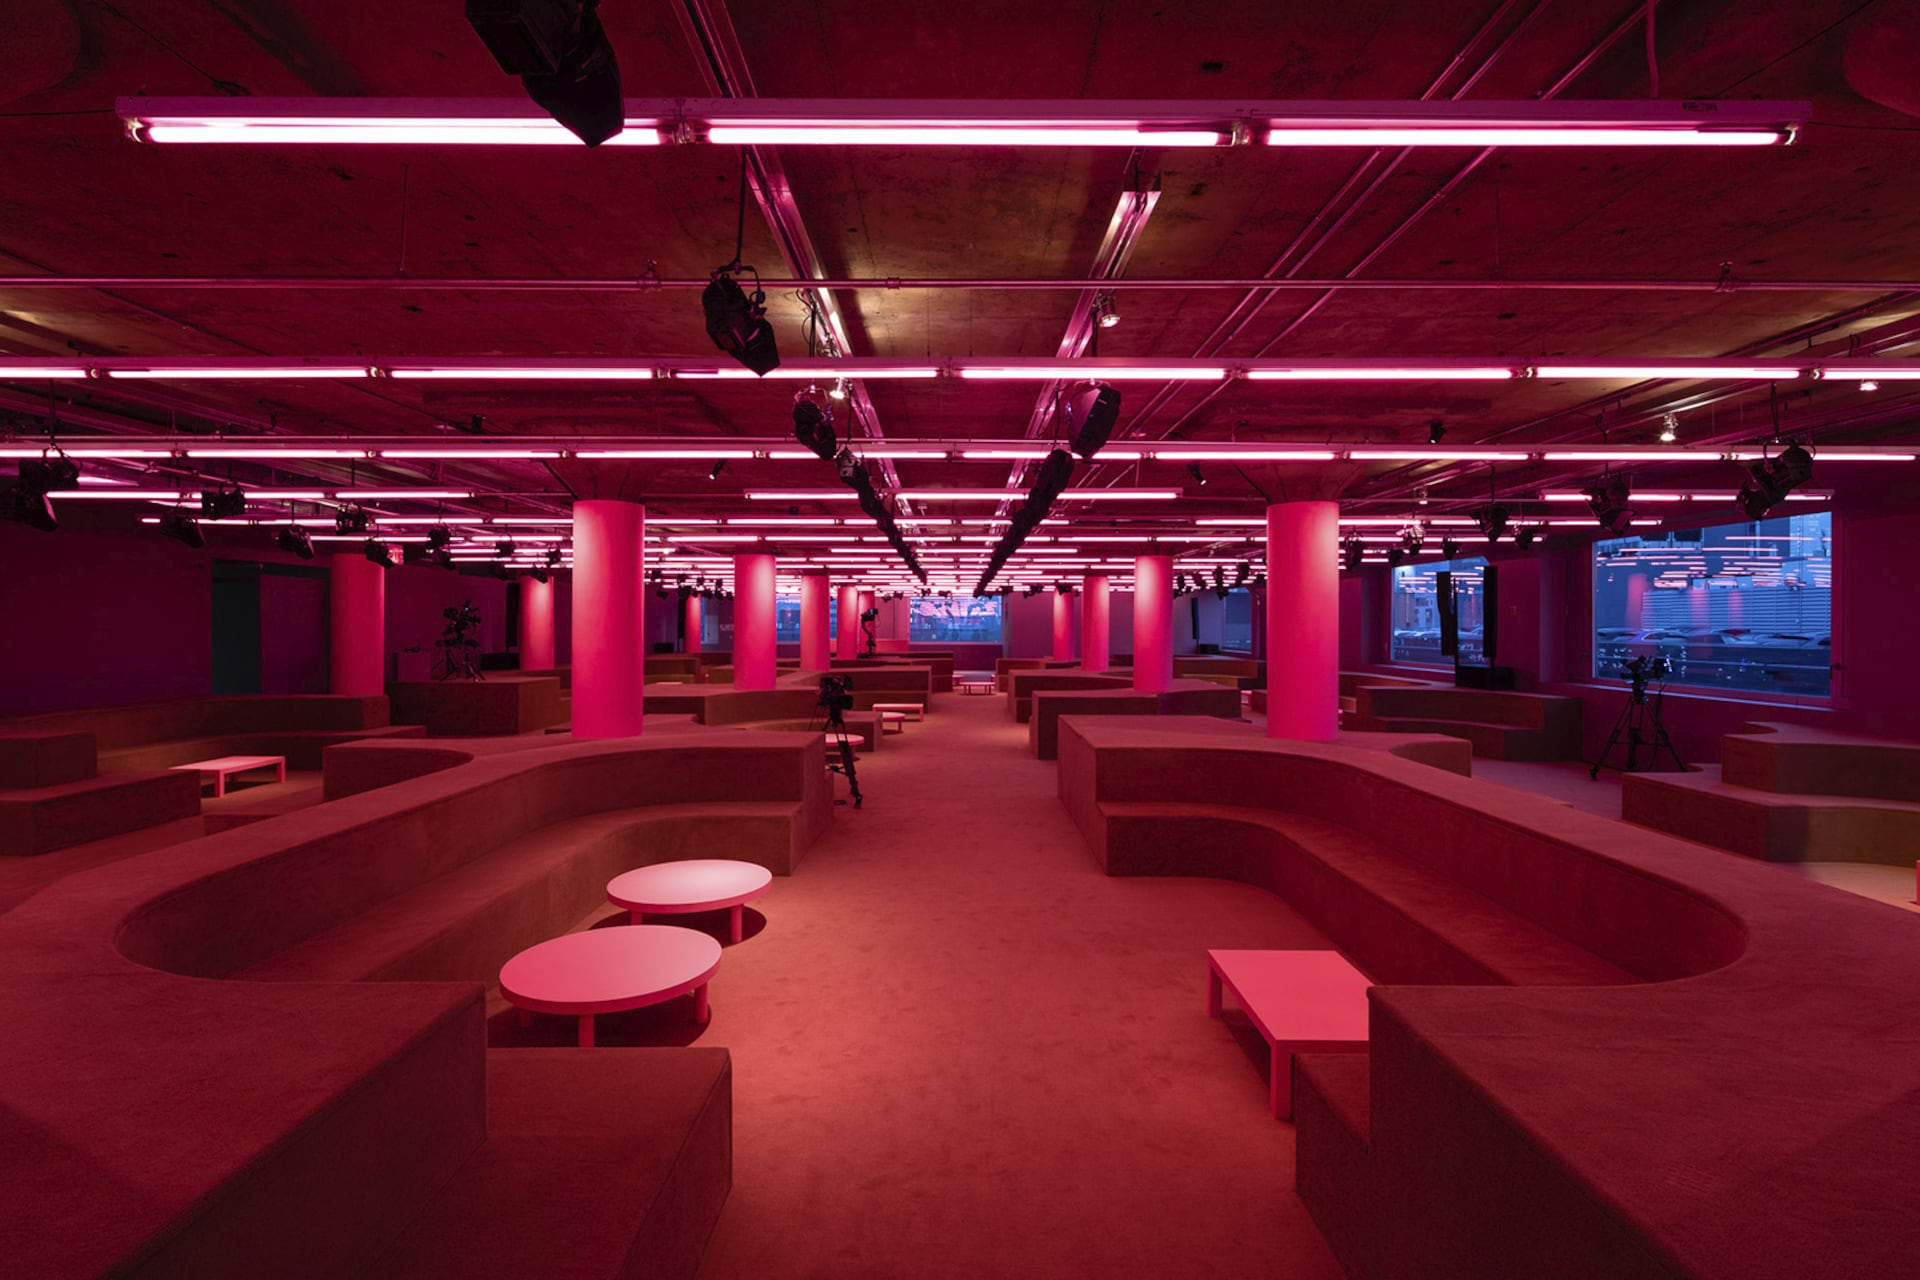 Prada Resort 2020 fashion show space 3. For the Prada 2020 Resort Show, AMO takes over the Piano Factory, Prada US's headquarters, and reinterprets it as an intimate setting for social gathering.